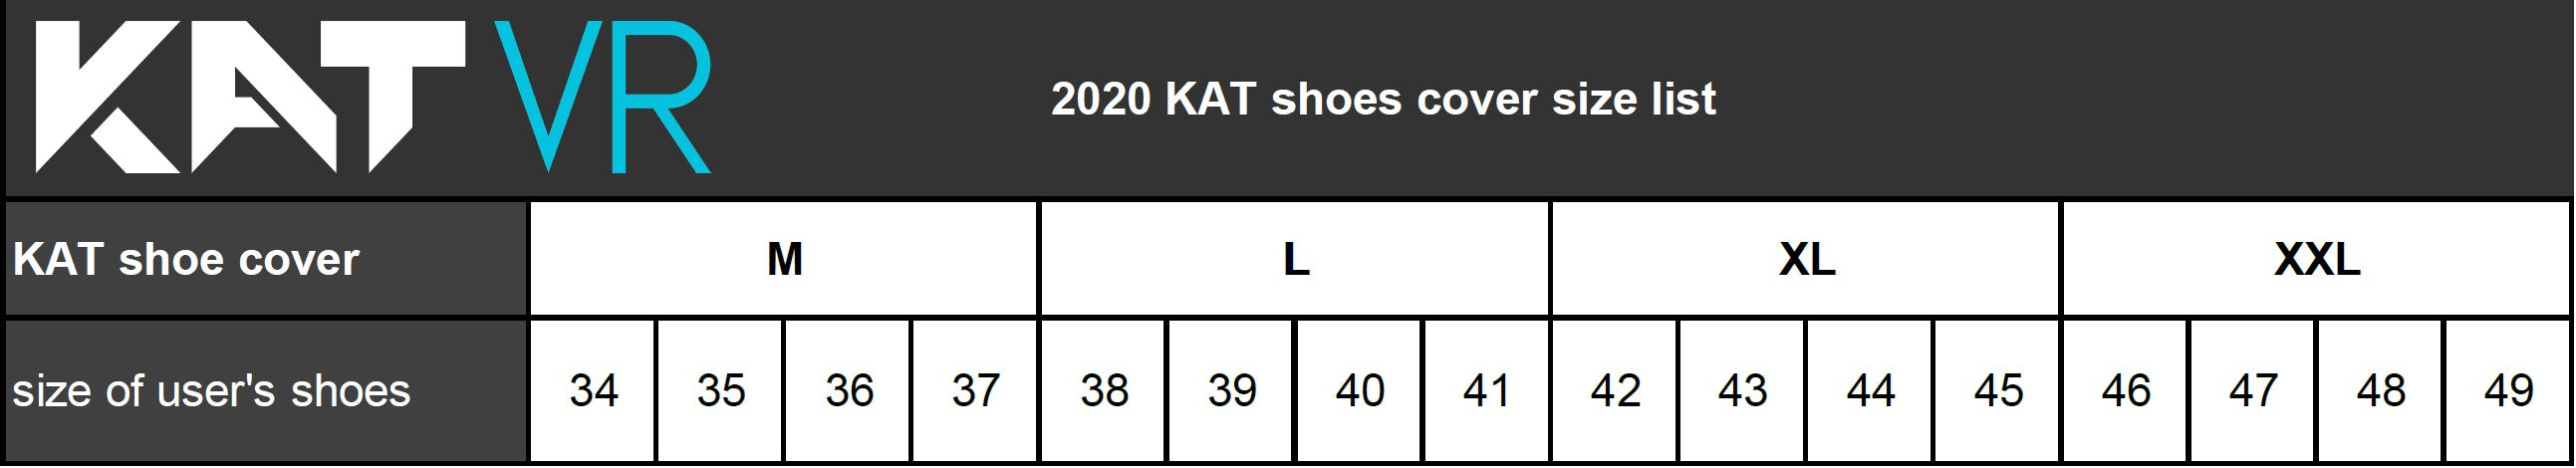 Kat Walk Mini shoe cover sizes